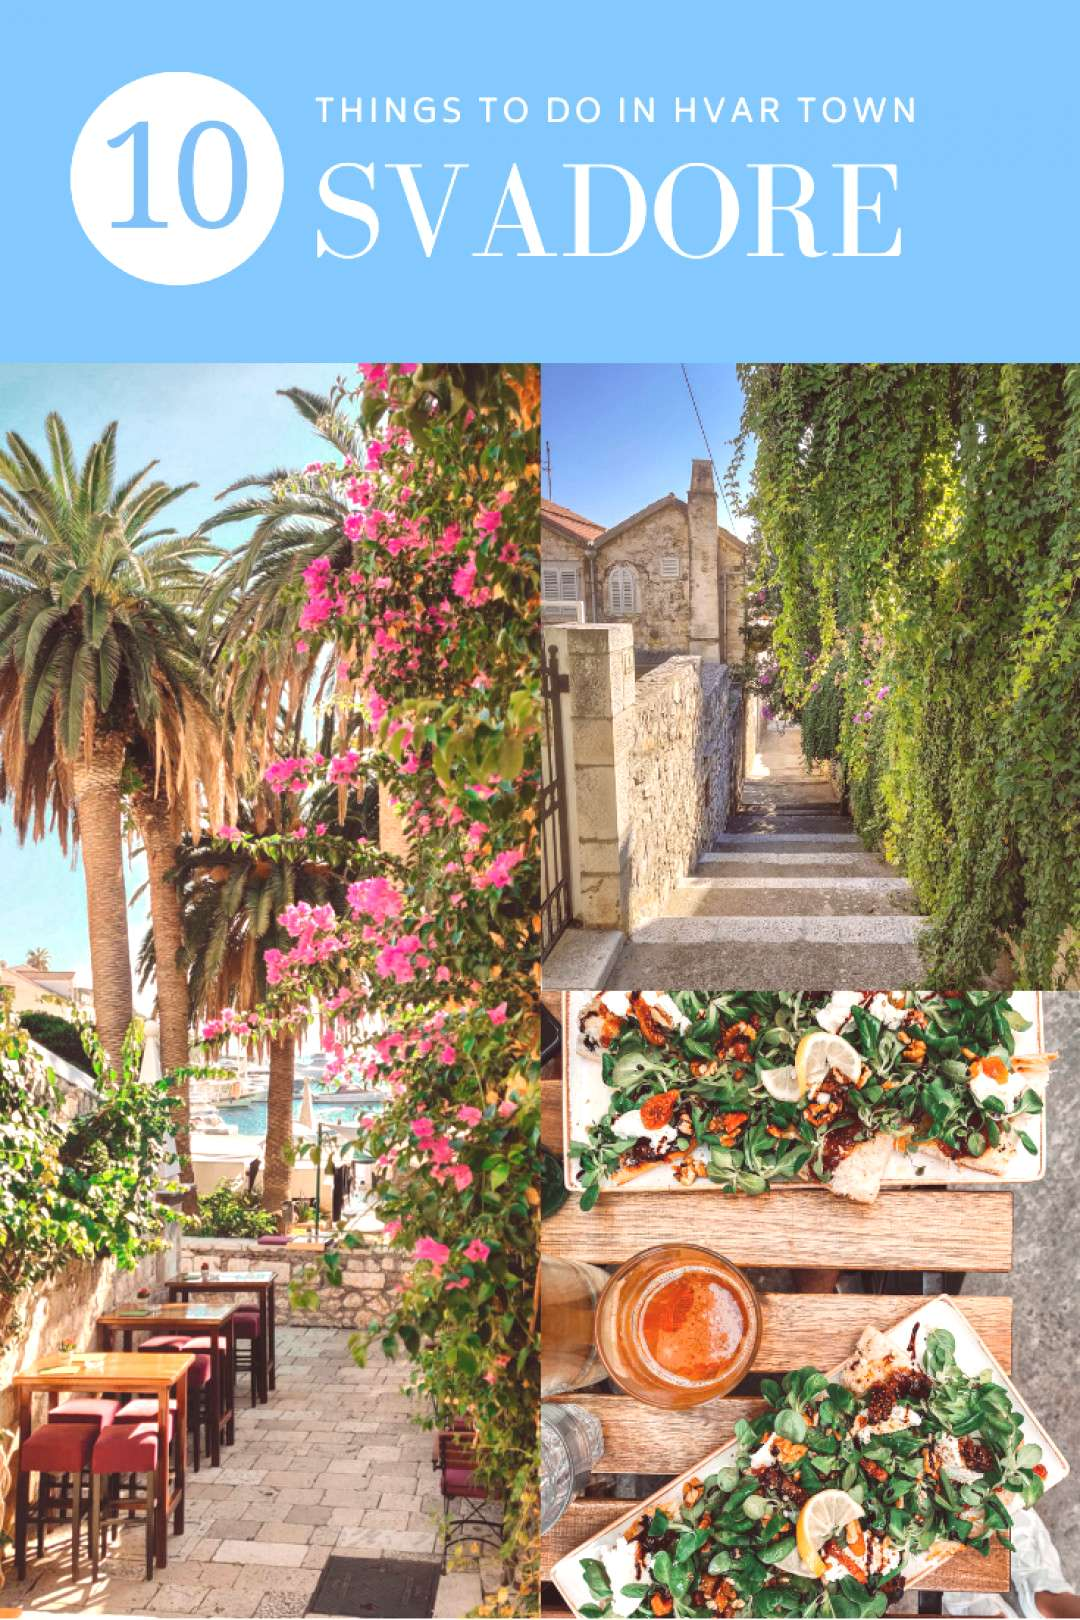 Hvar Town Travel Guide 10 Things to Do, Restaurants, and More - SVADORE Hvar Town Travel Guide 10